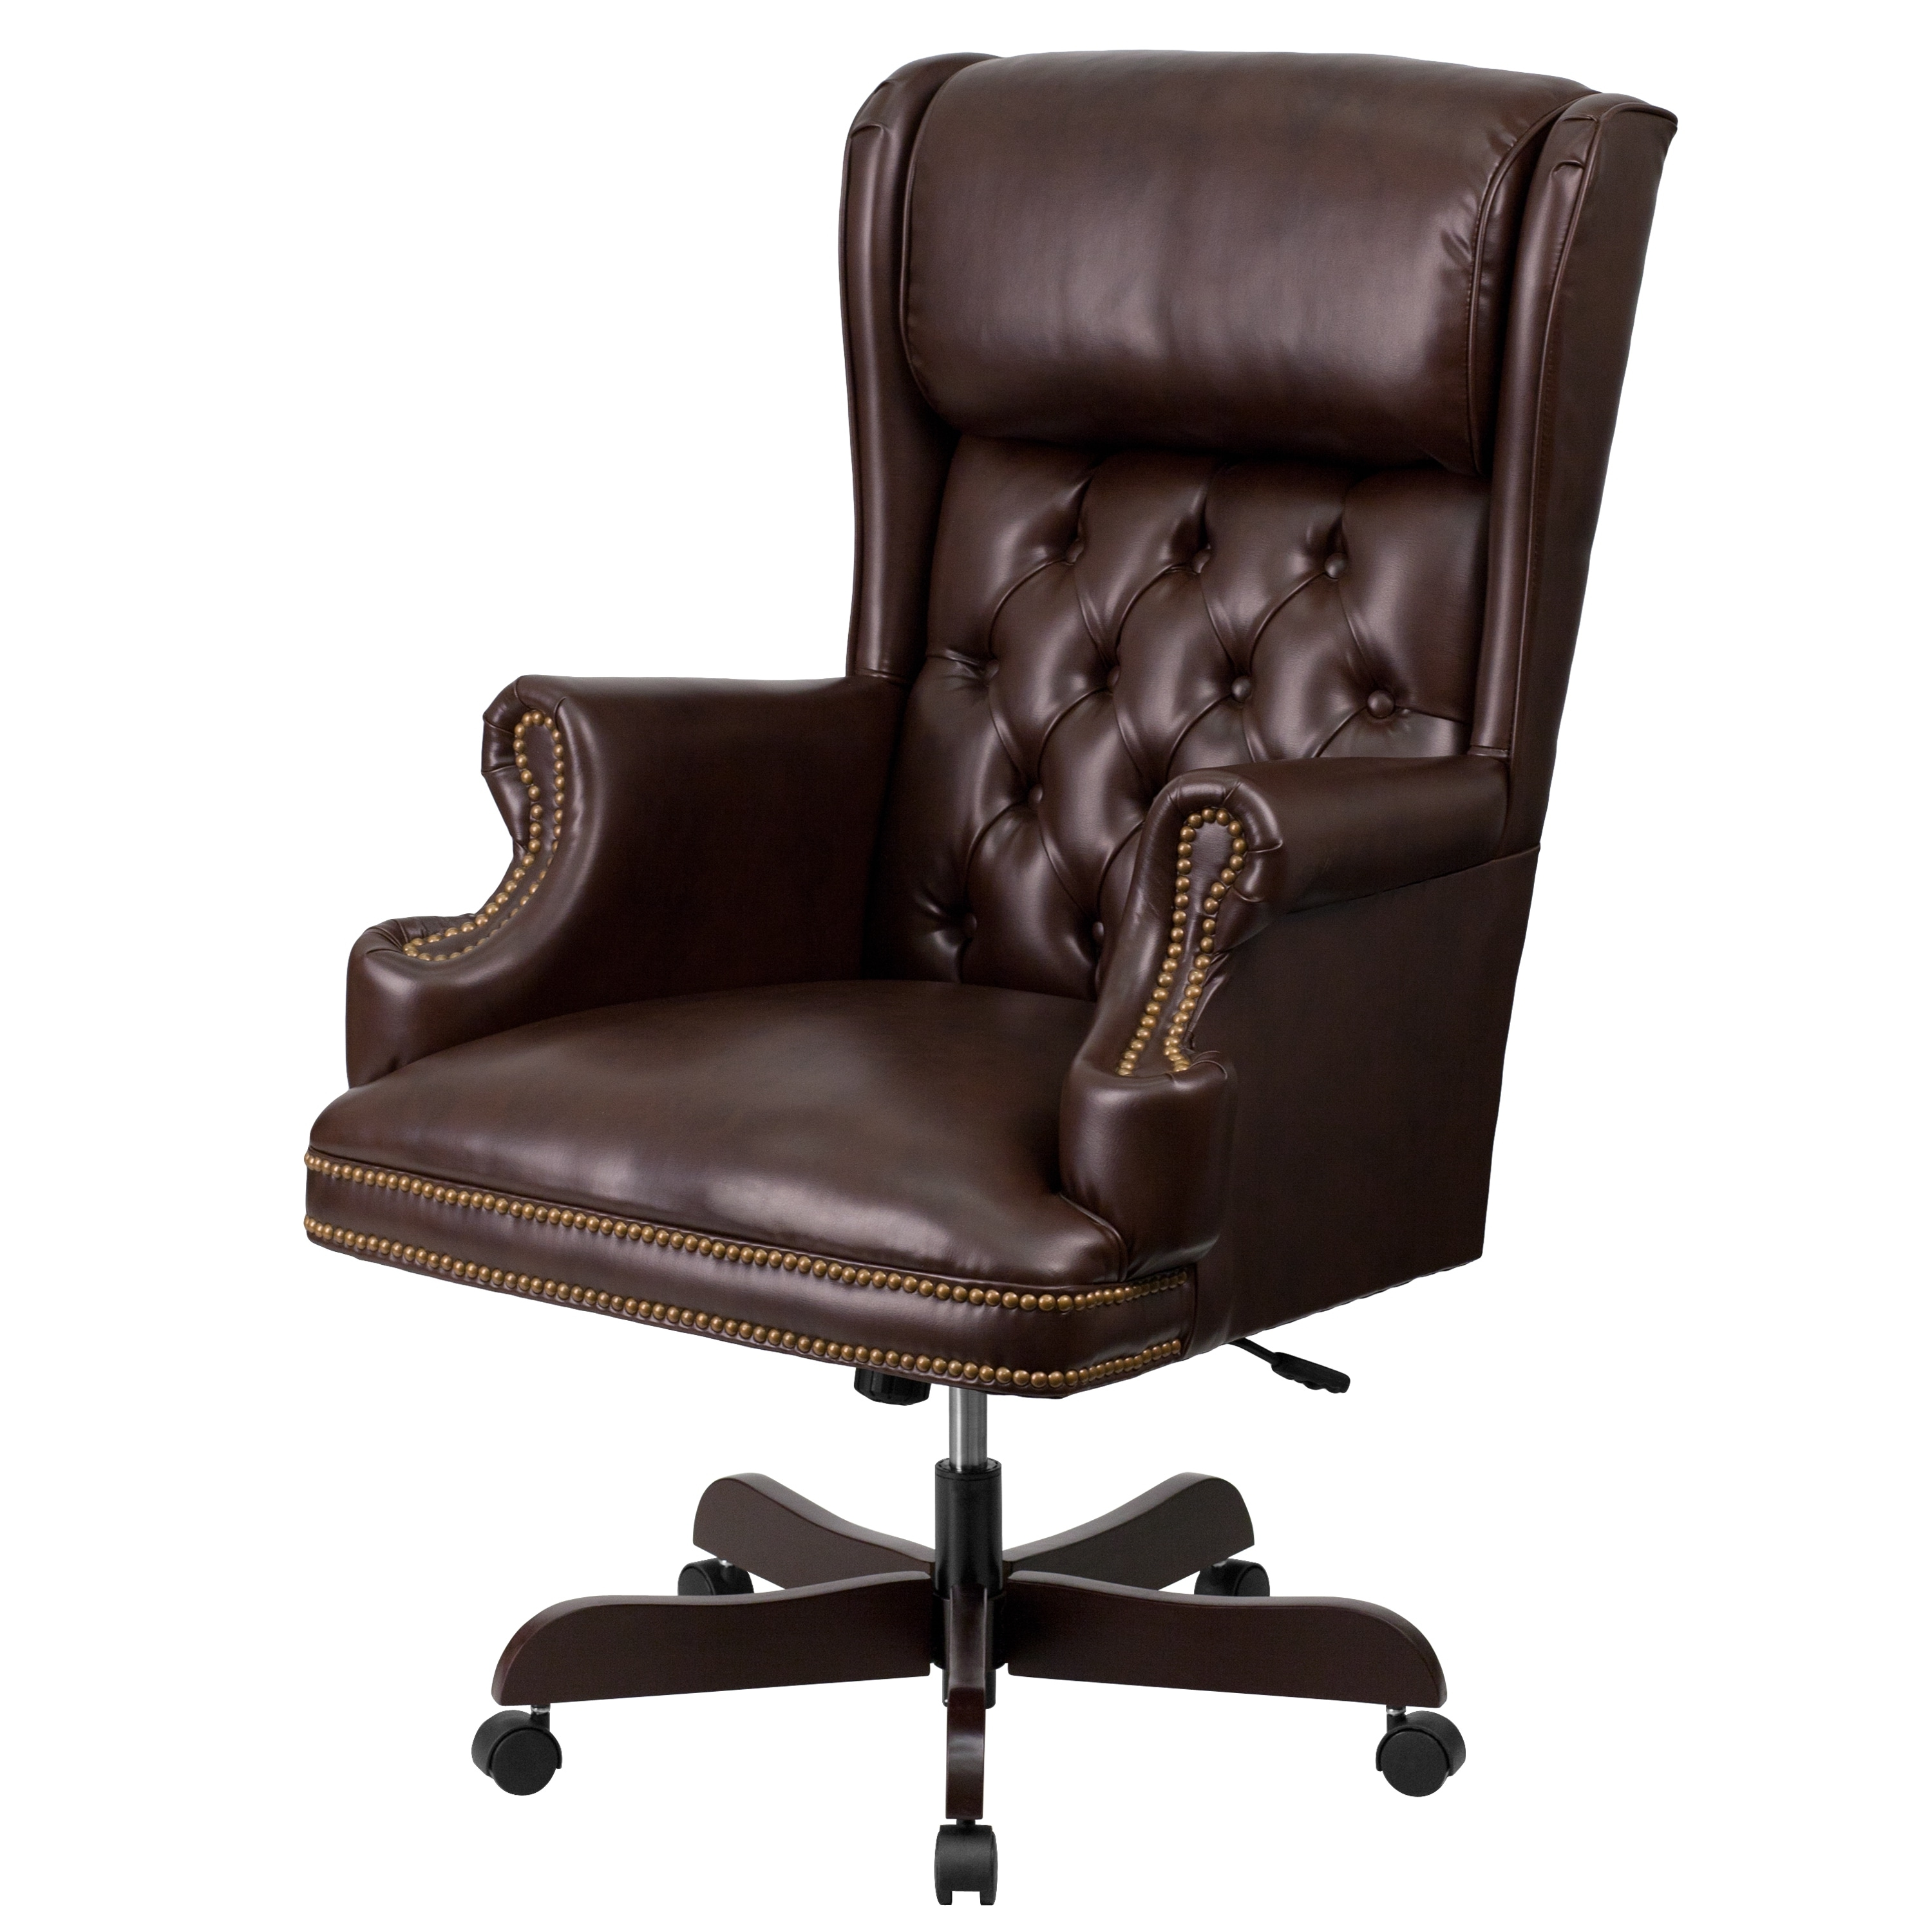 Wood And Leather Executive Office Chairs With Current High Back Traditional Tufted Leather Executive Office Chair – Free (View 19 of 20)